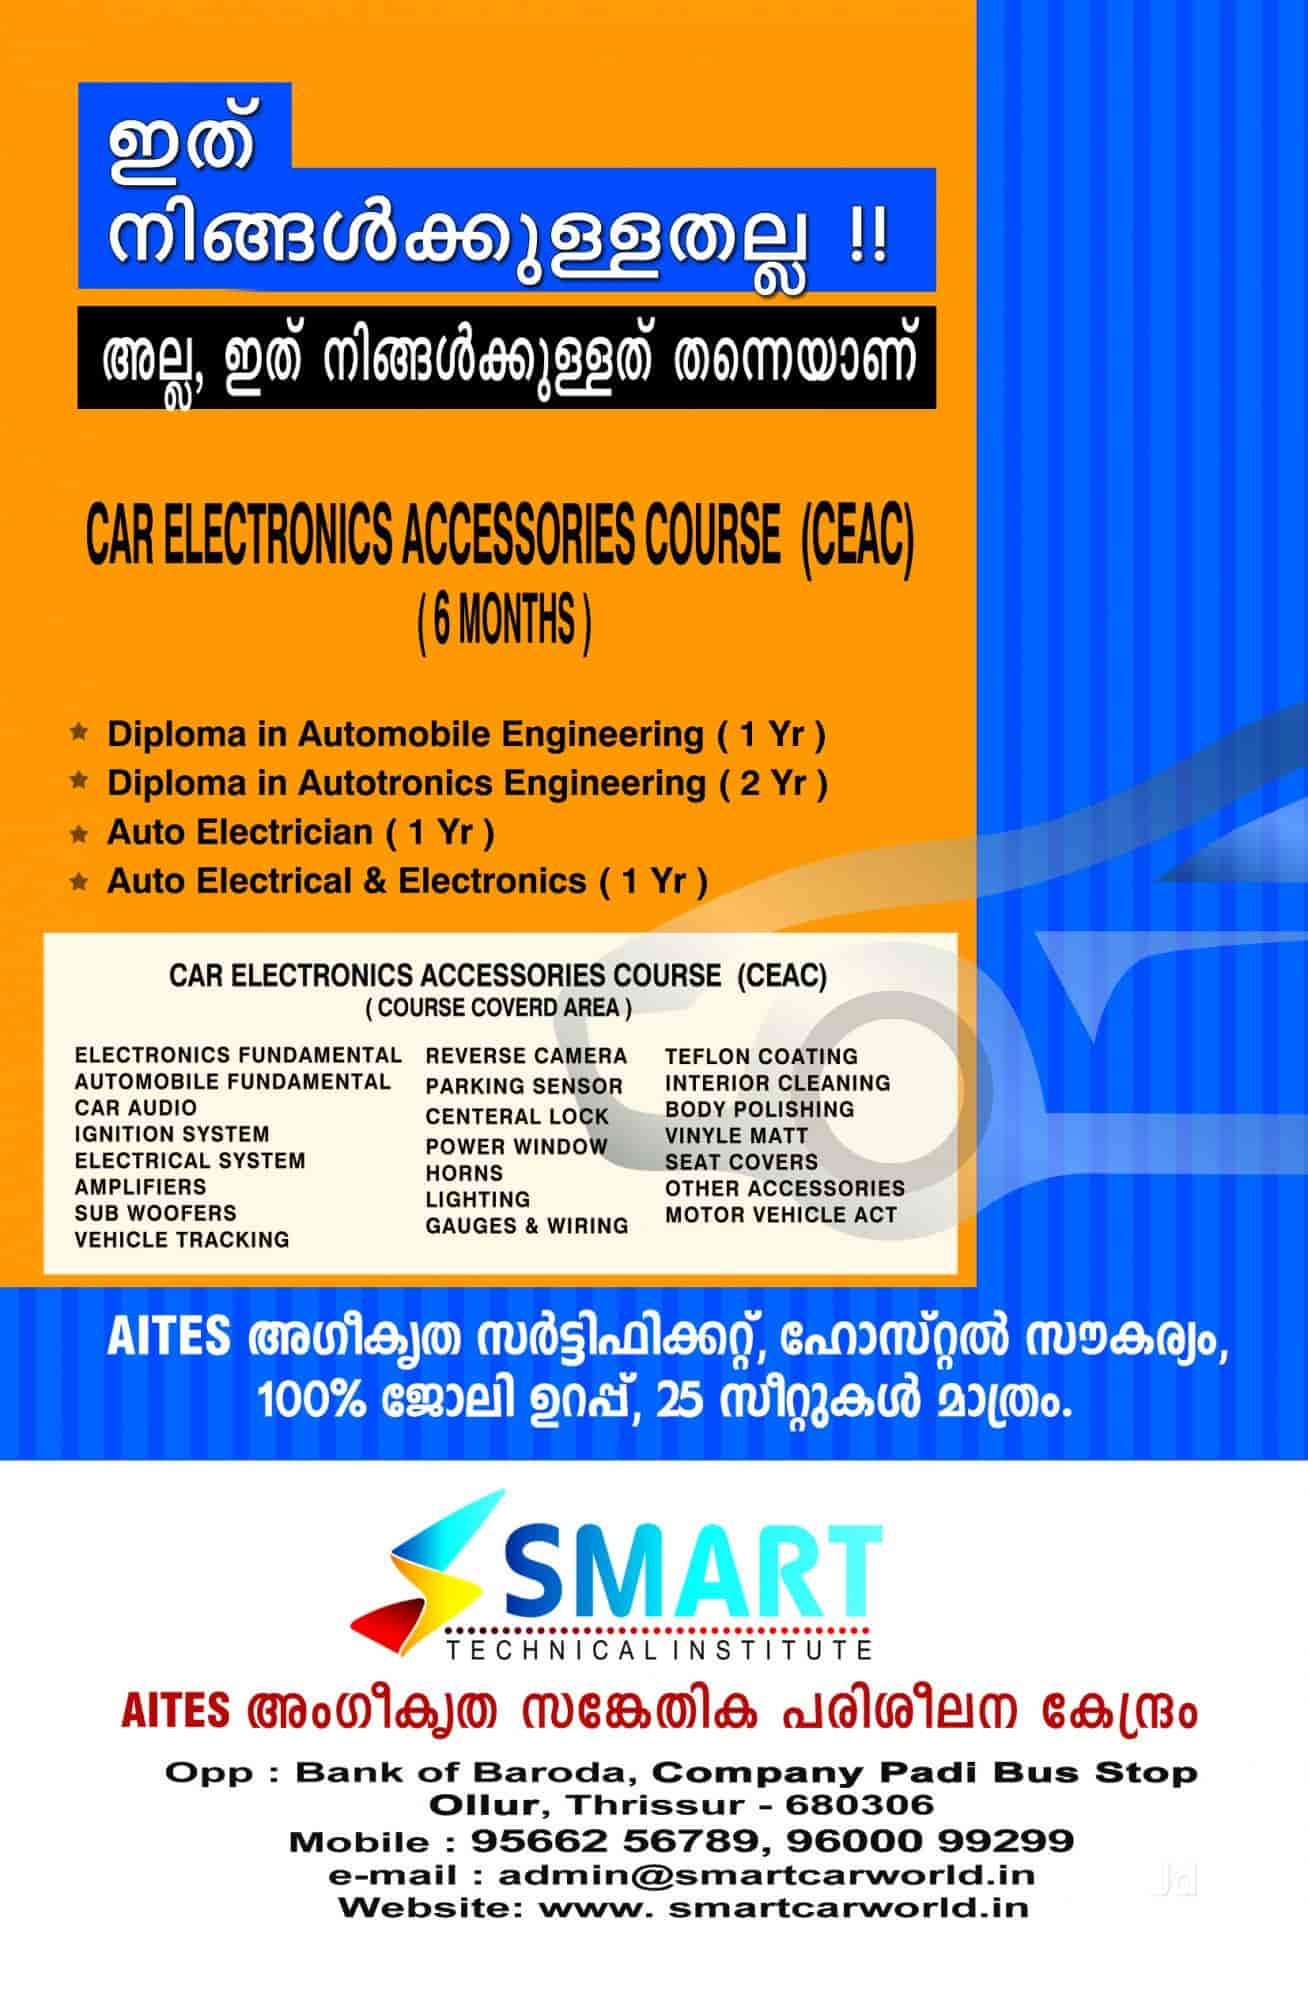 Smart Technical Institute, Ollur - Technical Institutes in